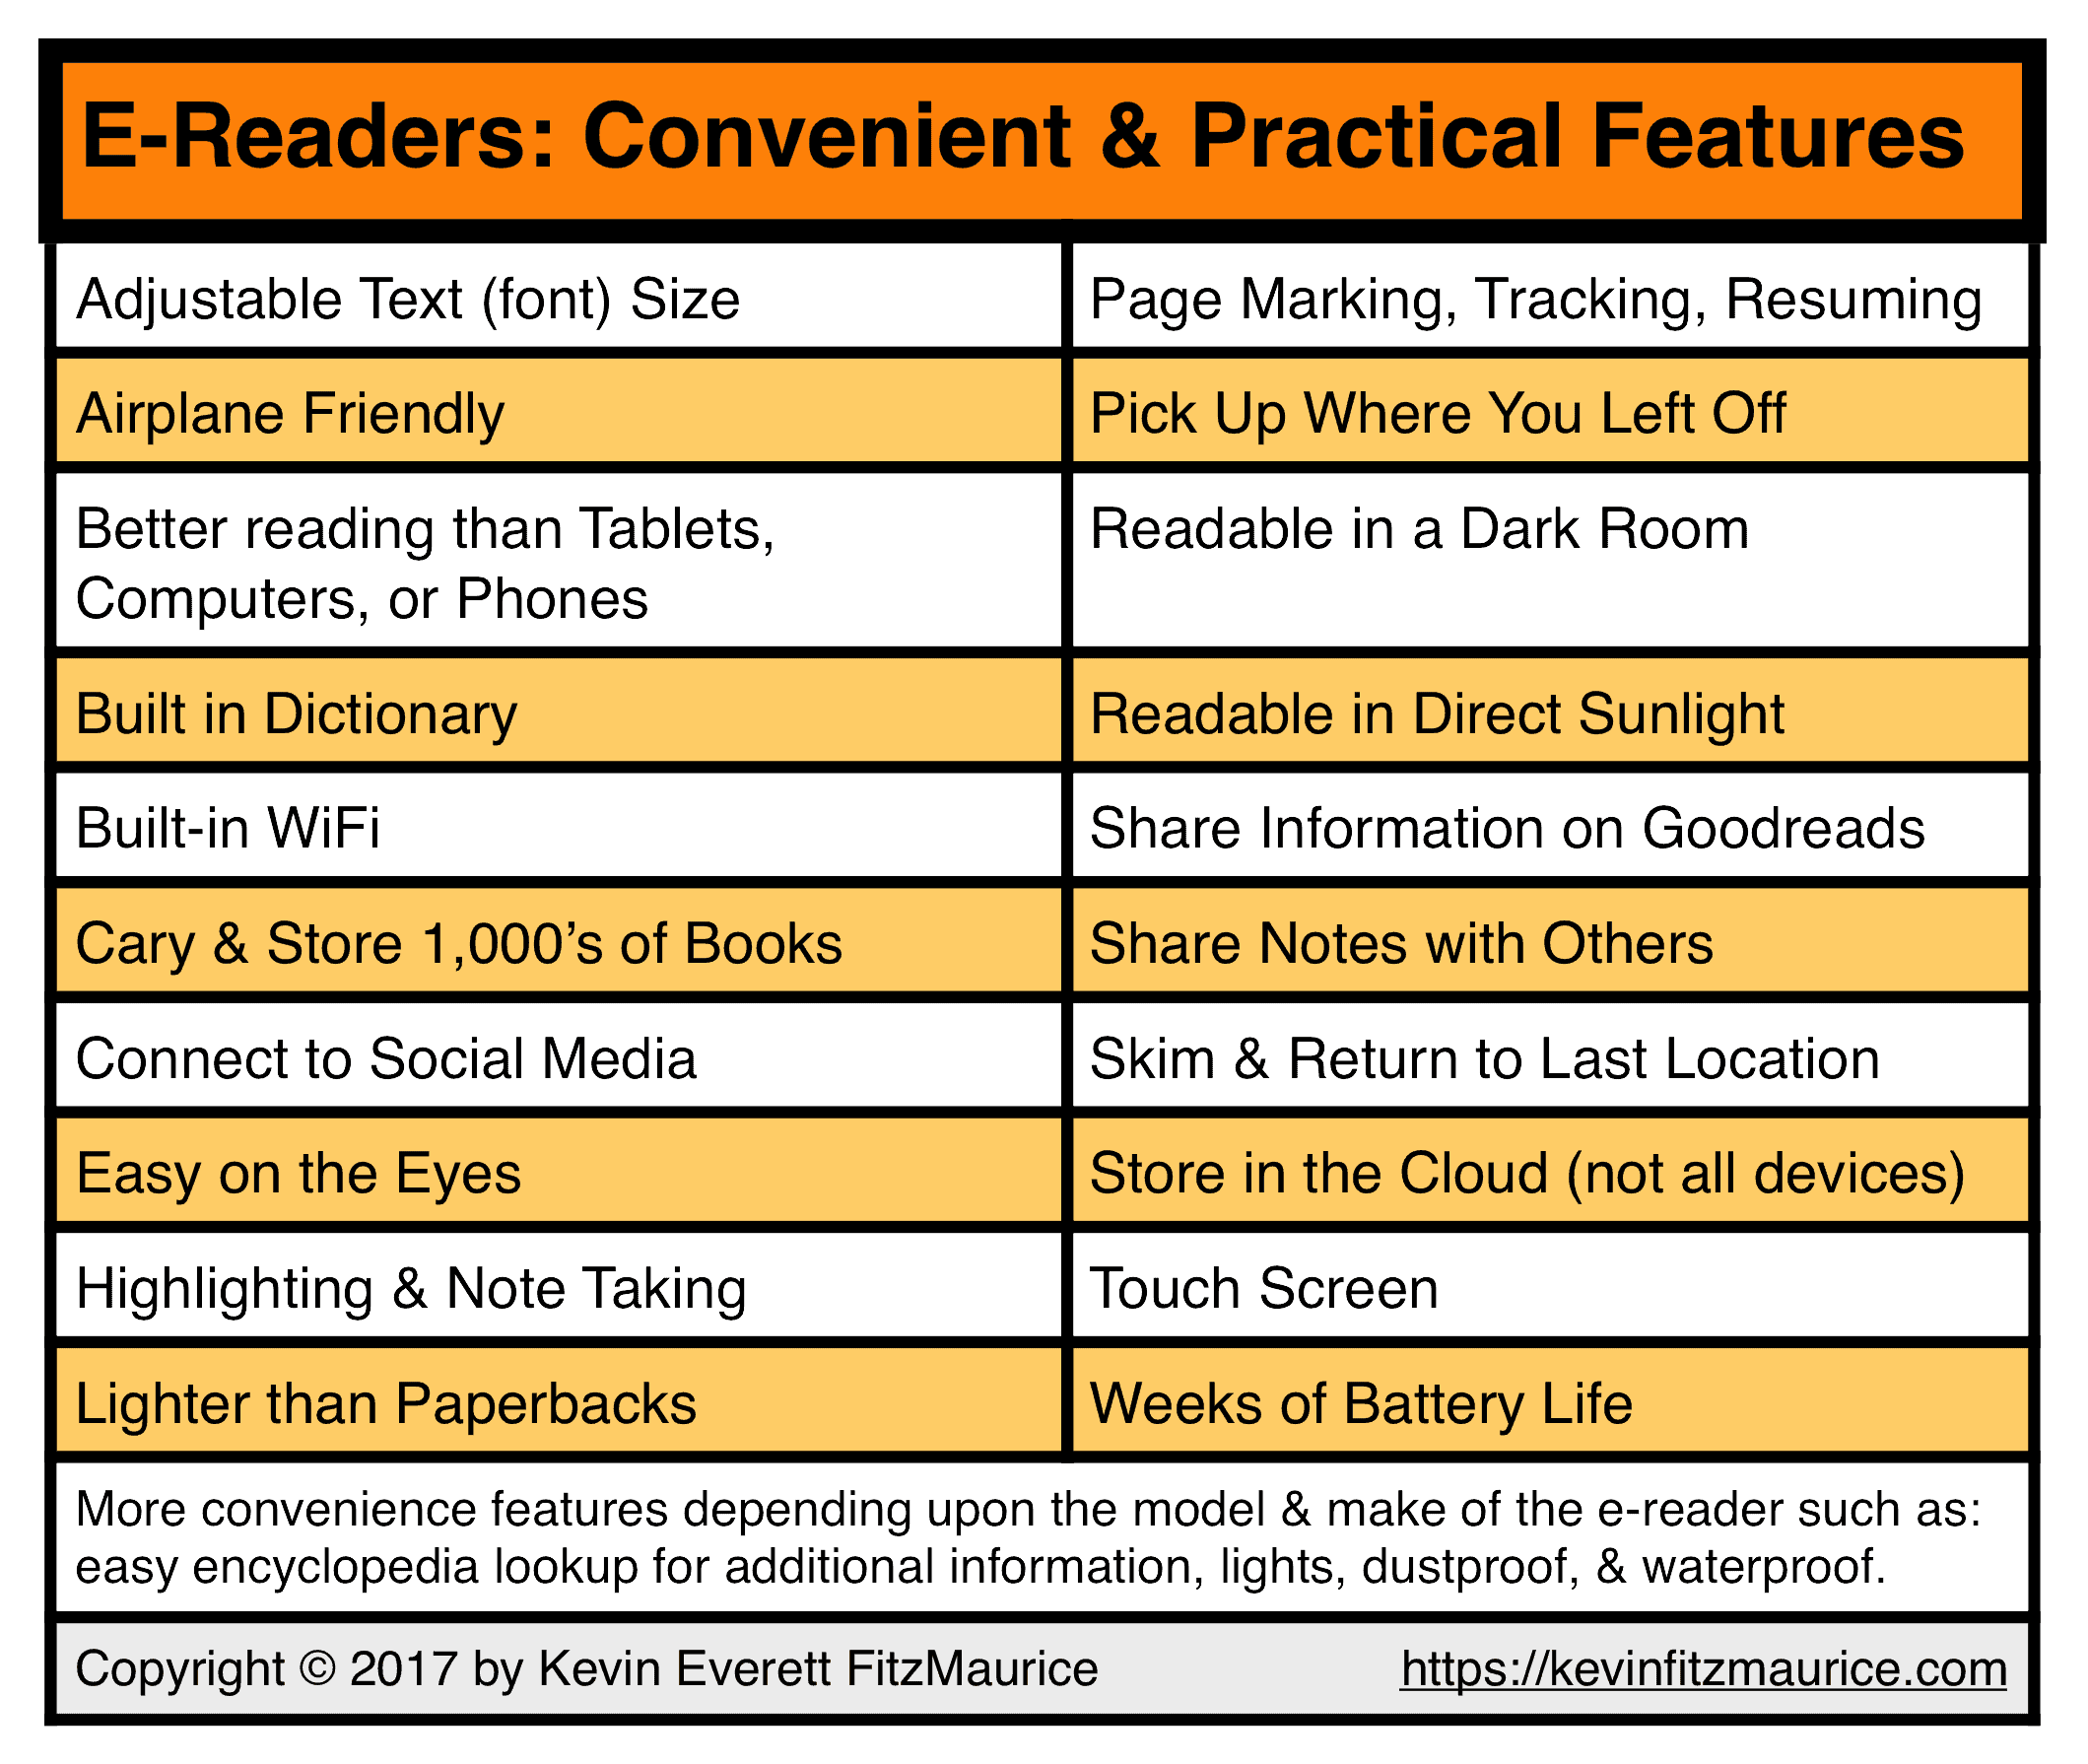 E-Readers Are Convenient & Practical